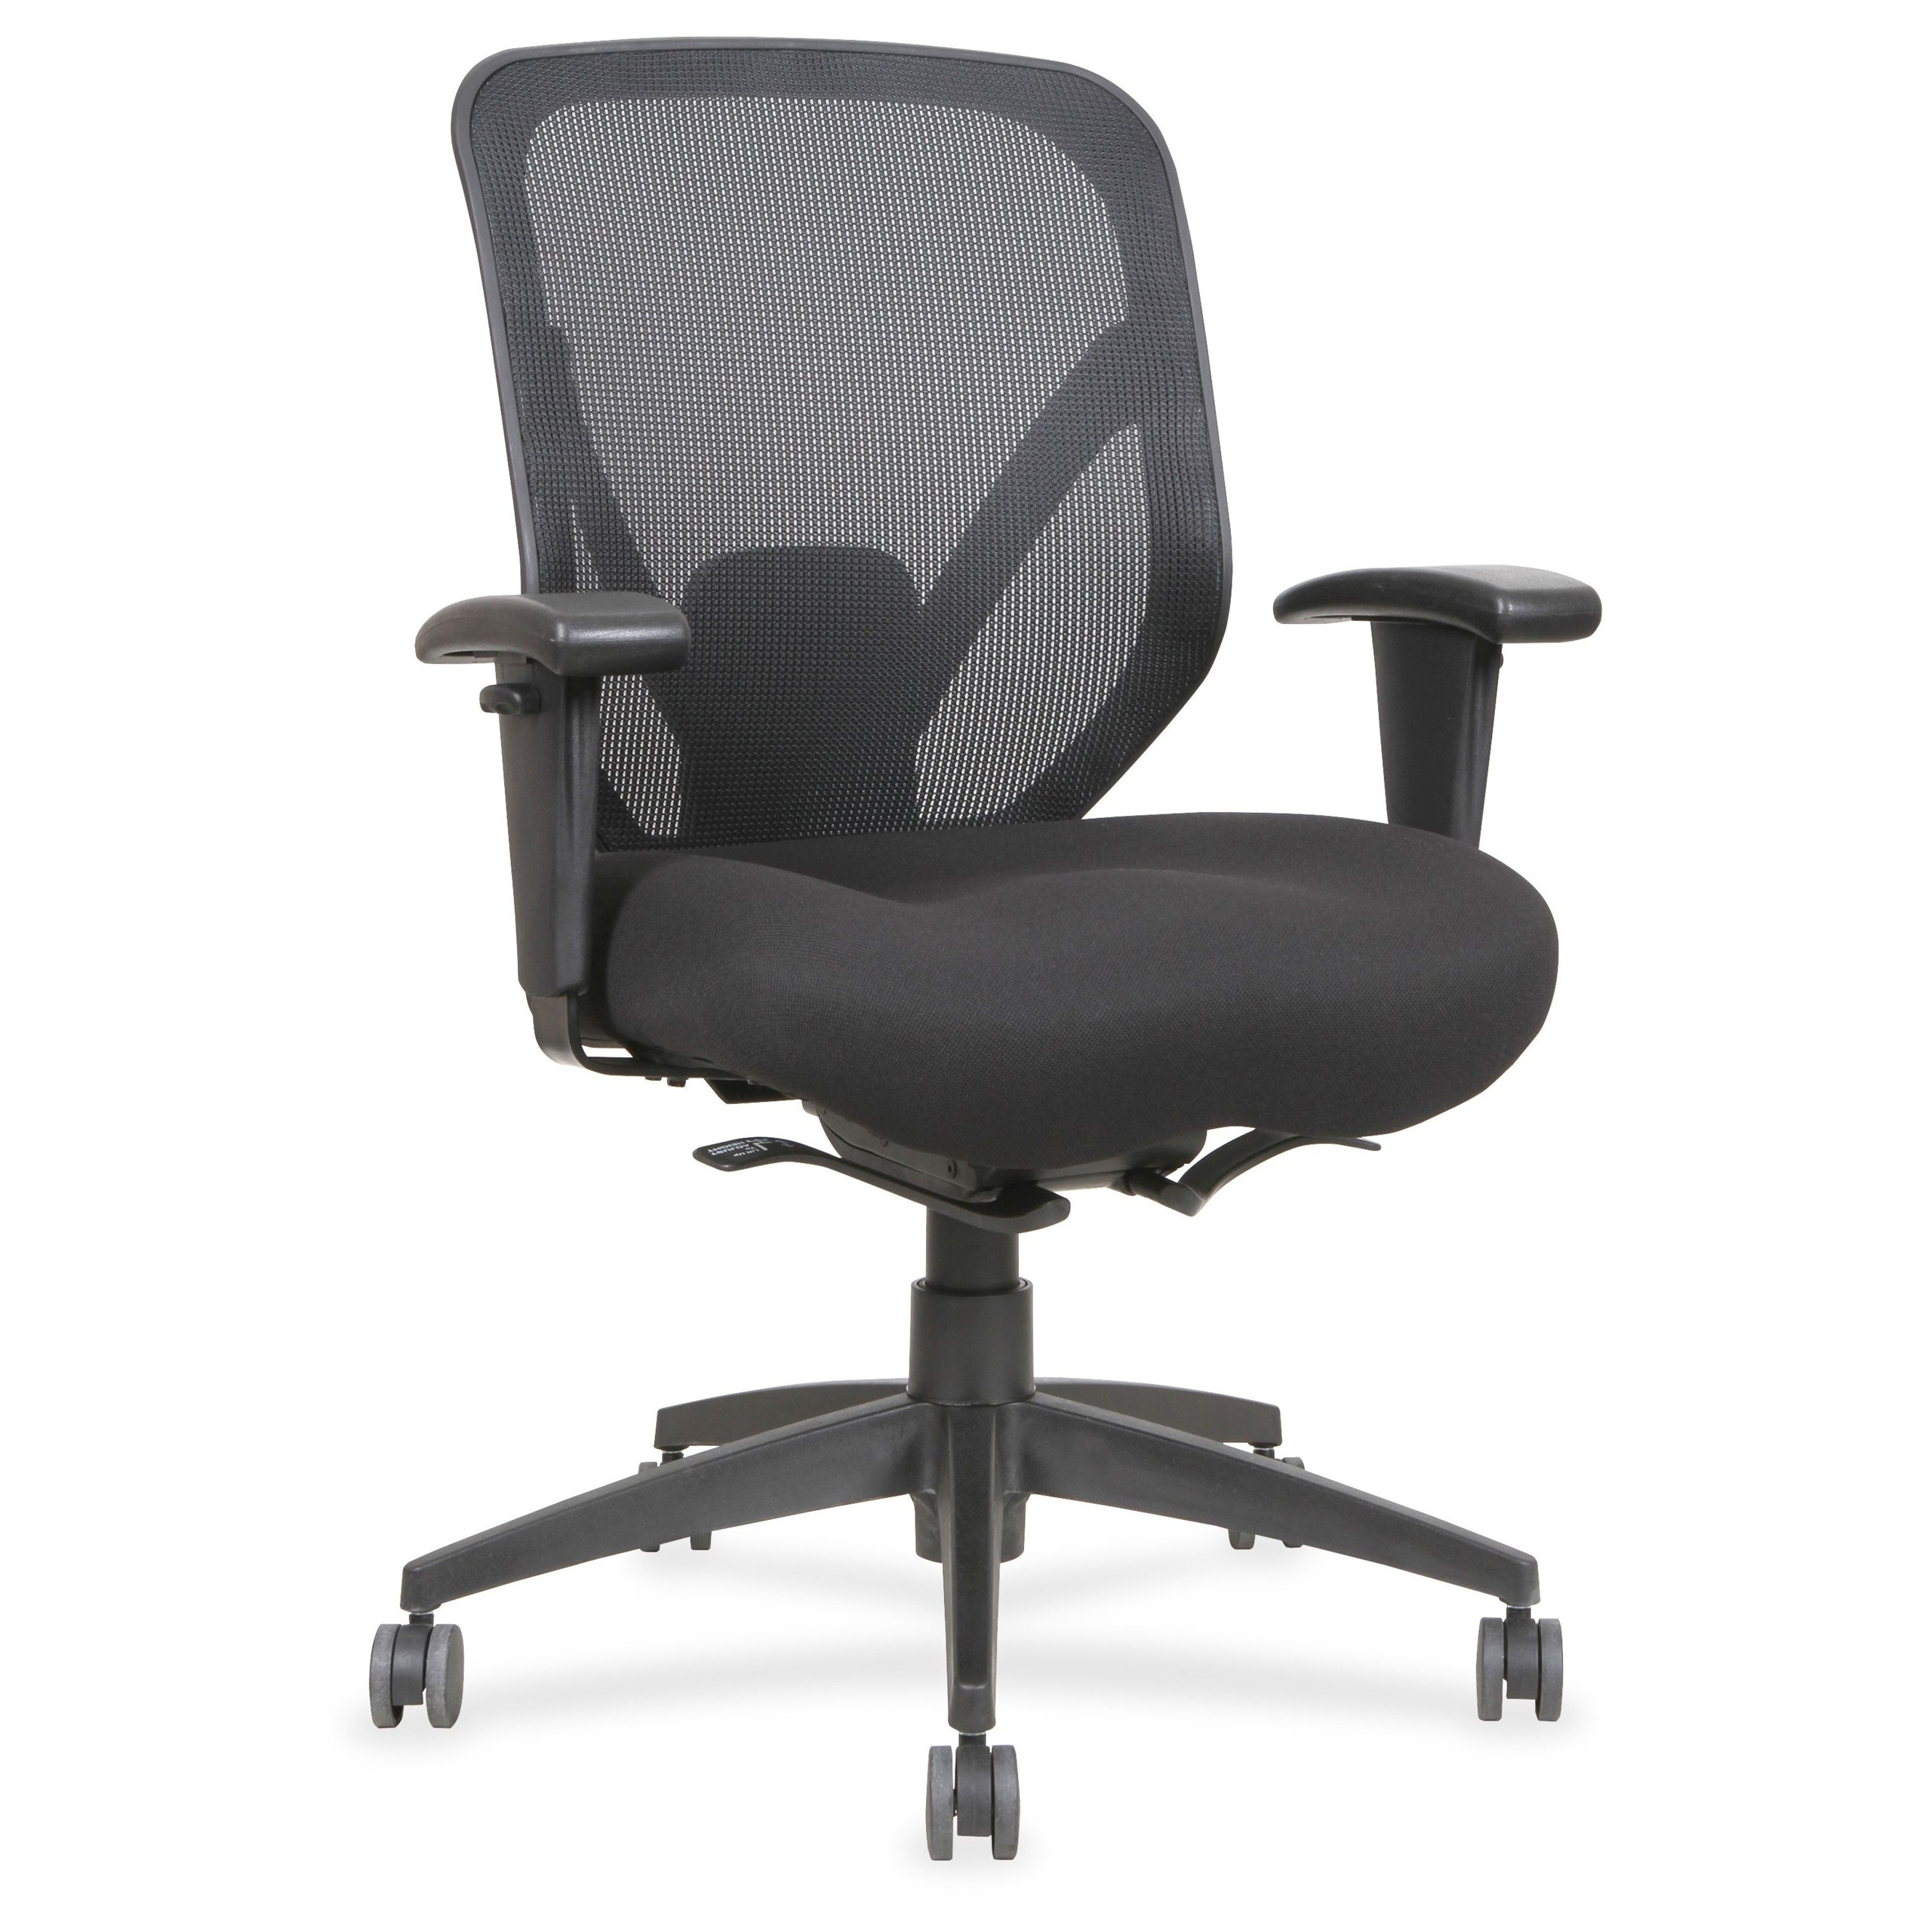 Ofm essentials series black mesh adjustable computer and task chair